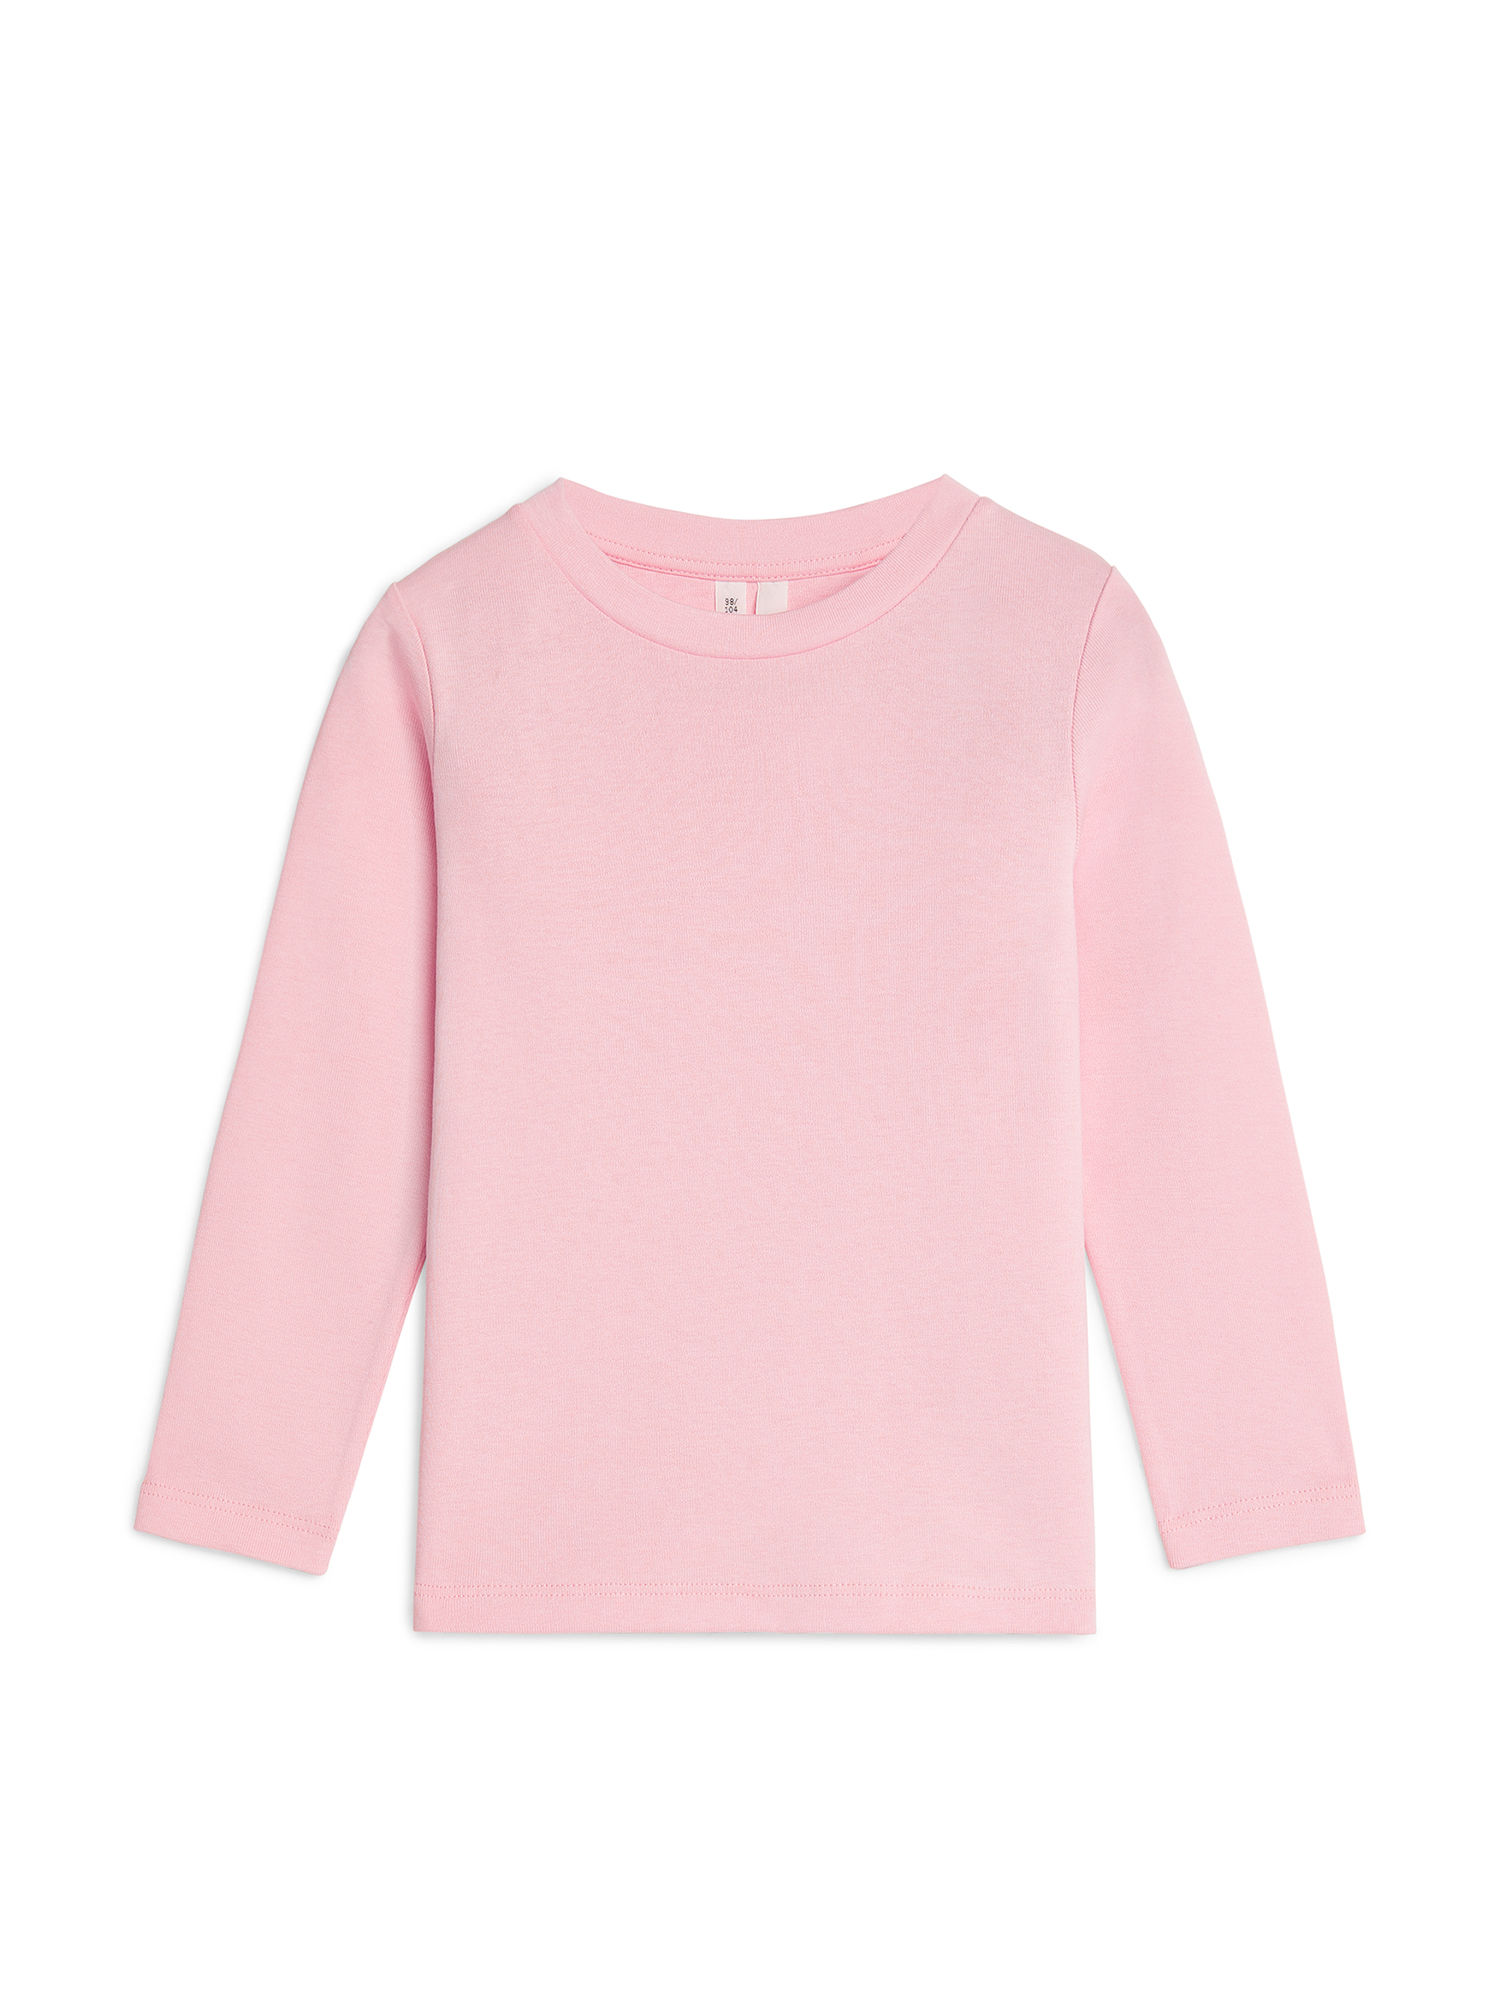 Fabric Swatch image of Arket long-sleeve t-shirt in pink